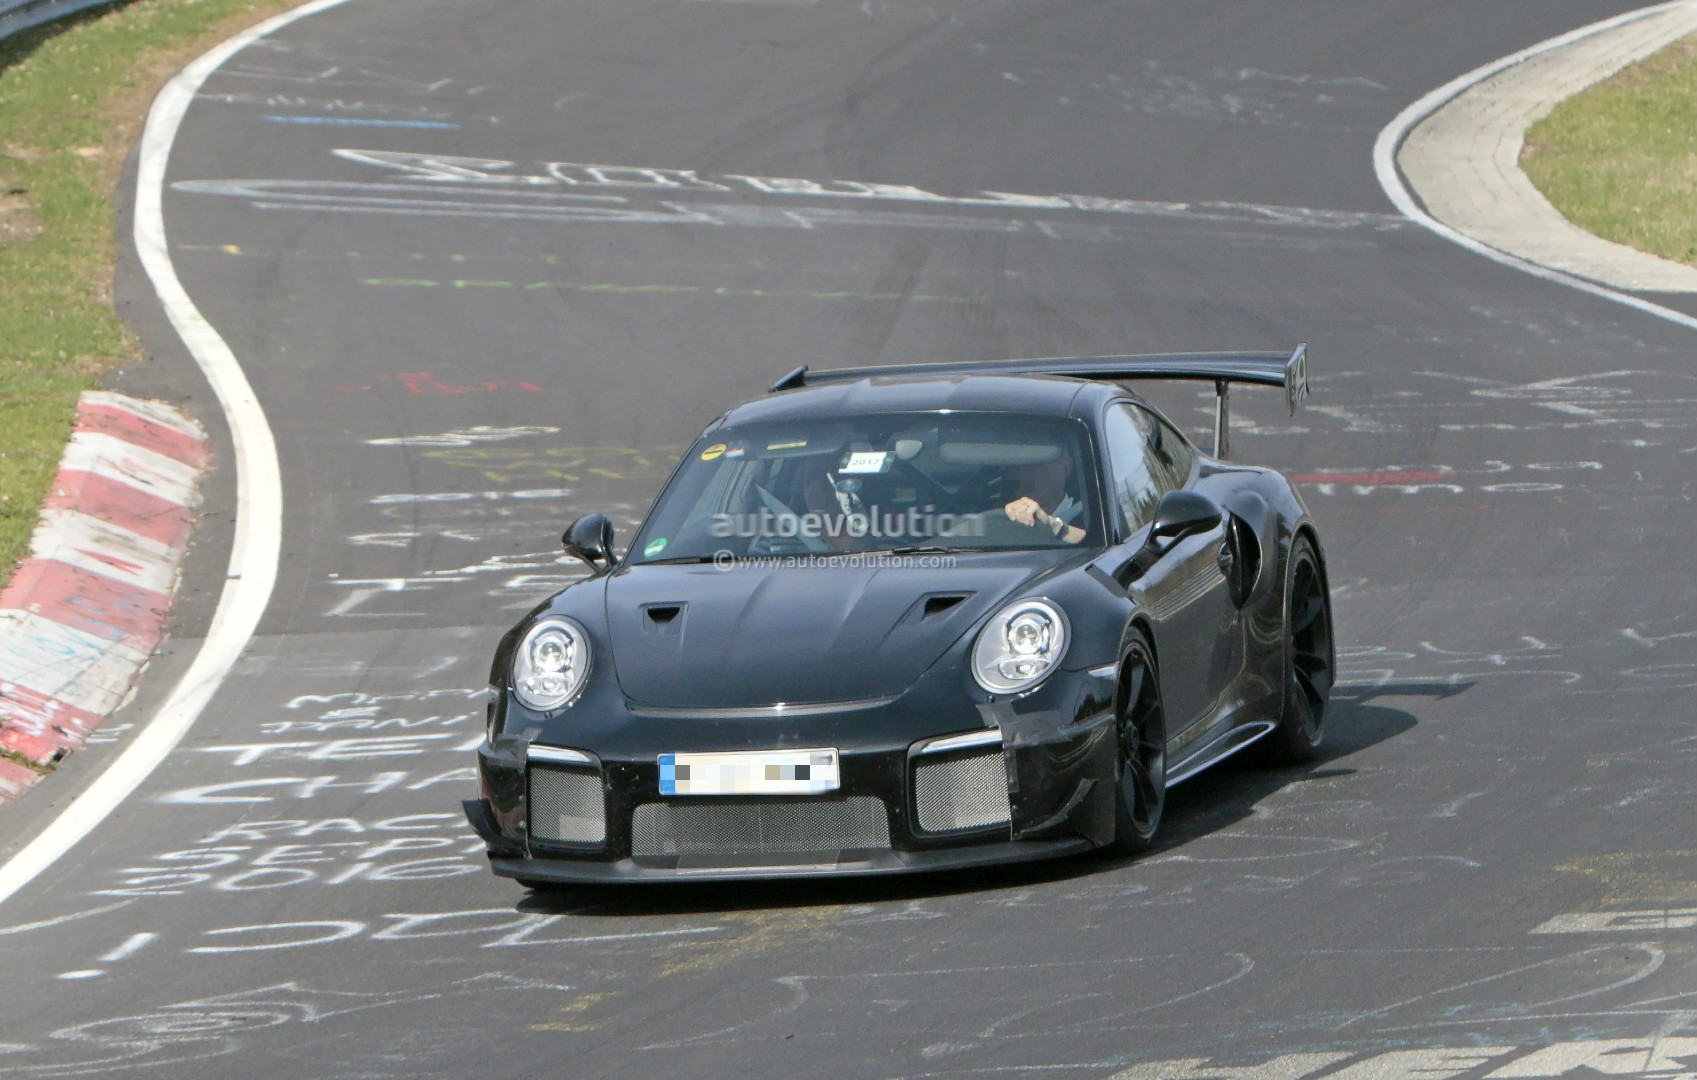 2018 porsche 911 gt2 shows up on nurburgring expect 7 05 lap time autoevol. Black Bedroom Furniture Sets. Home Design Ideas